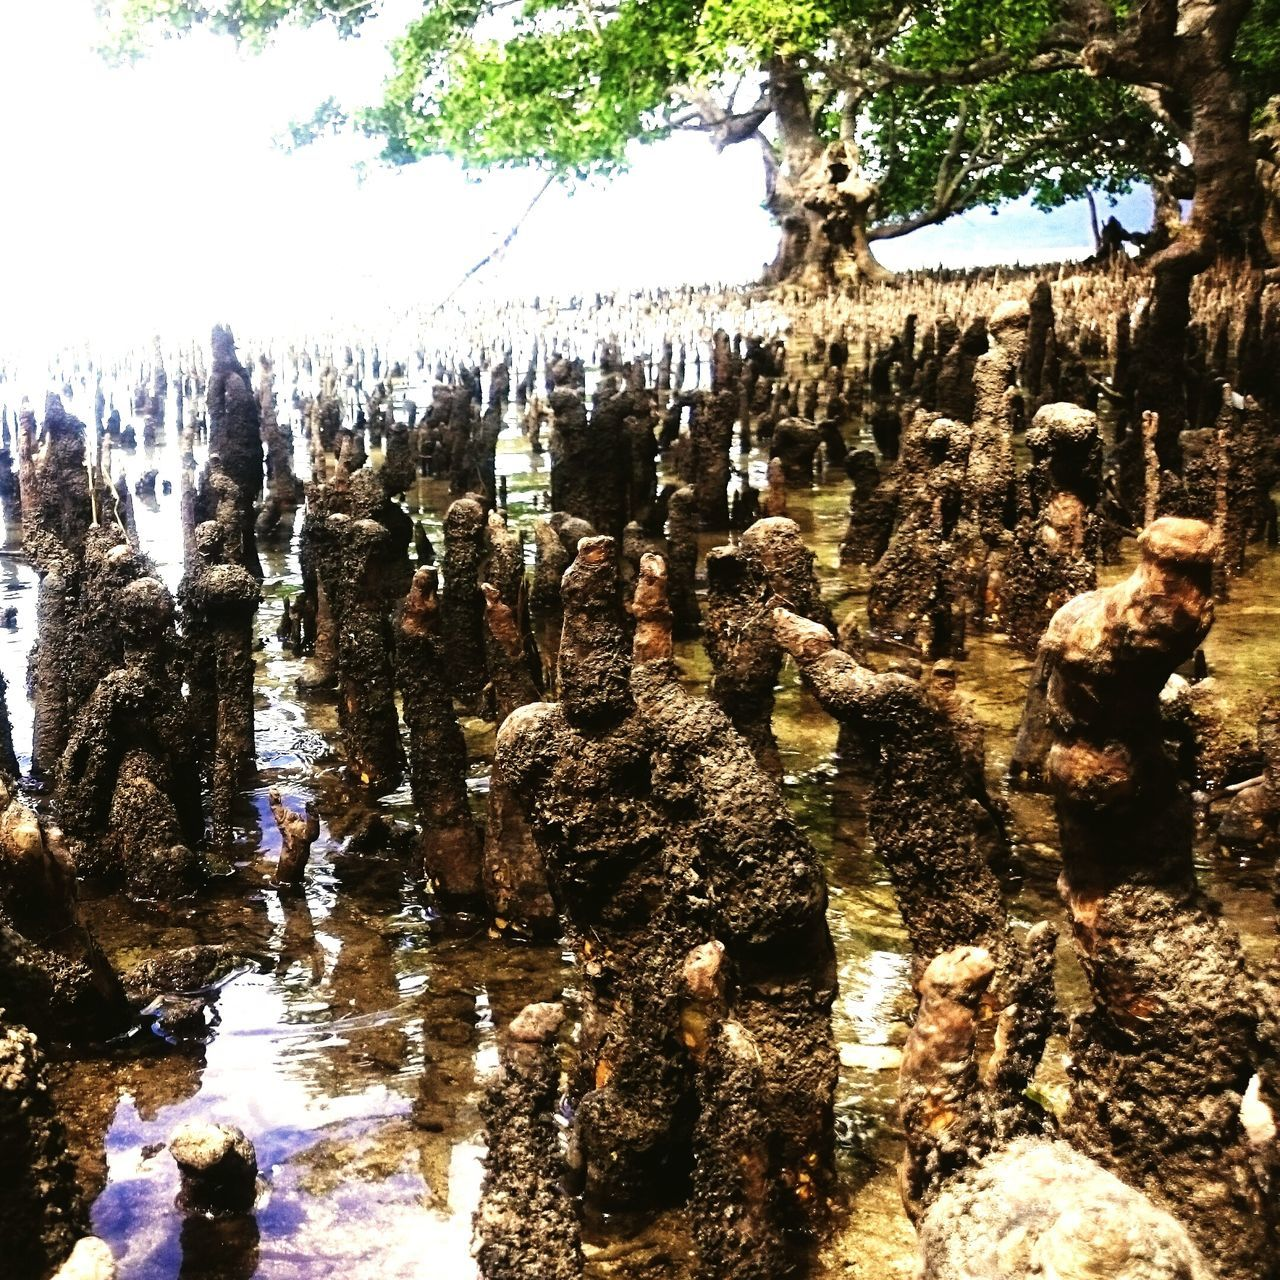 Mangroves Life Mobilephotography